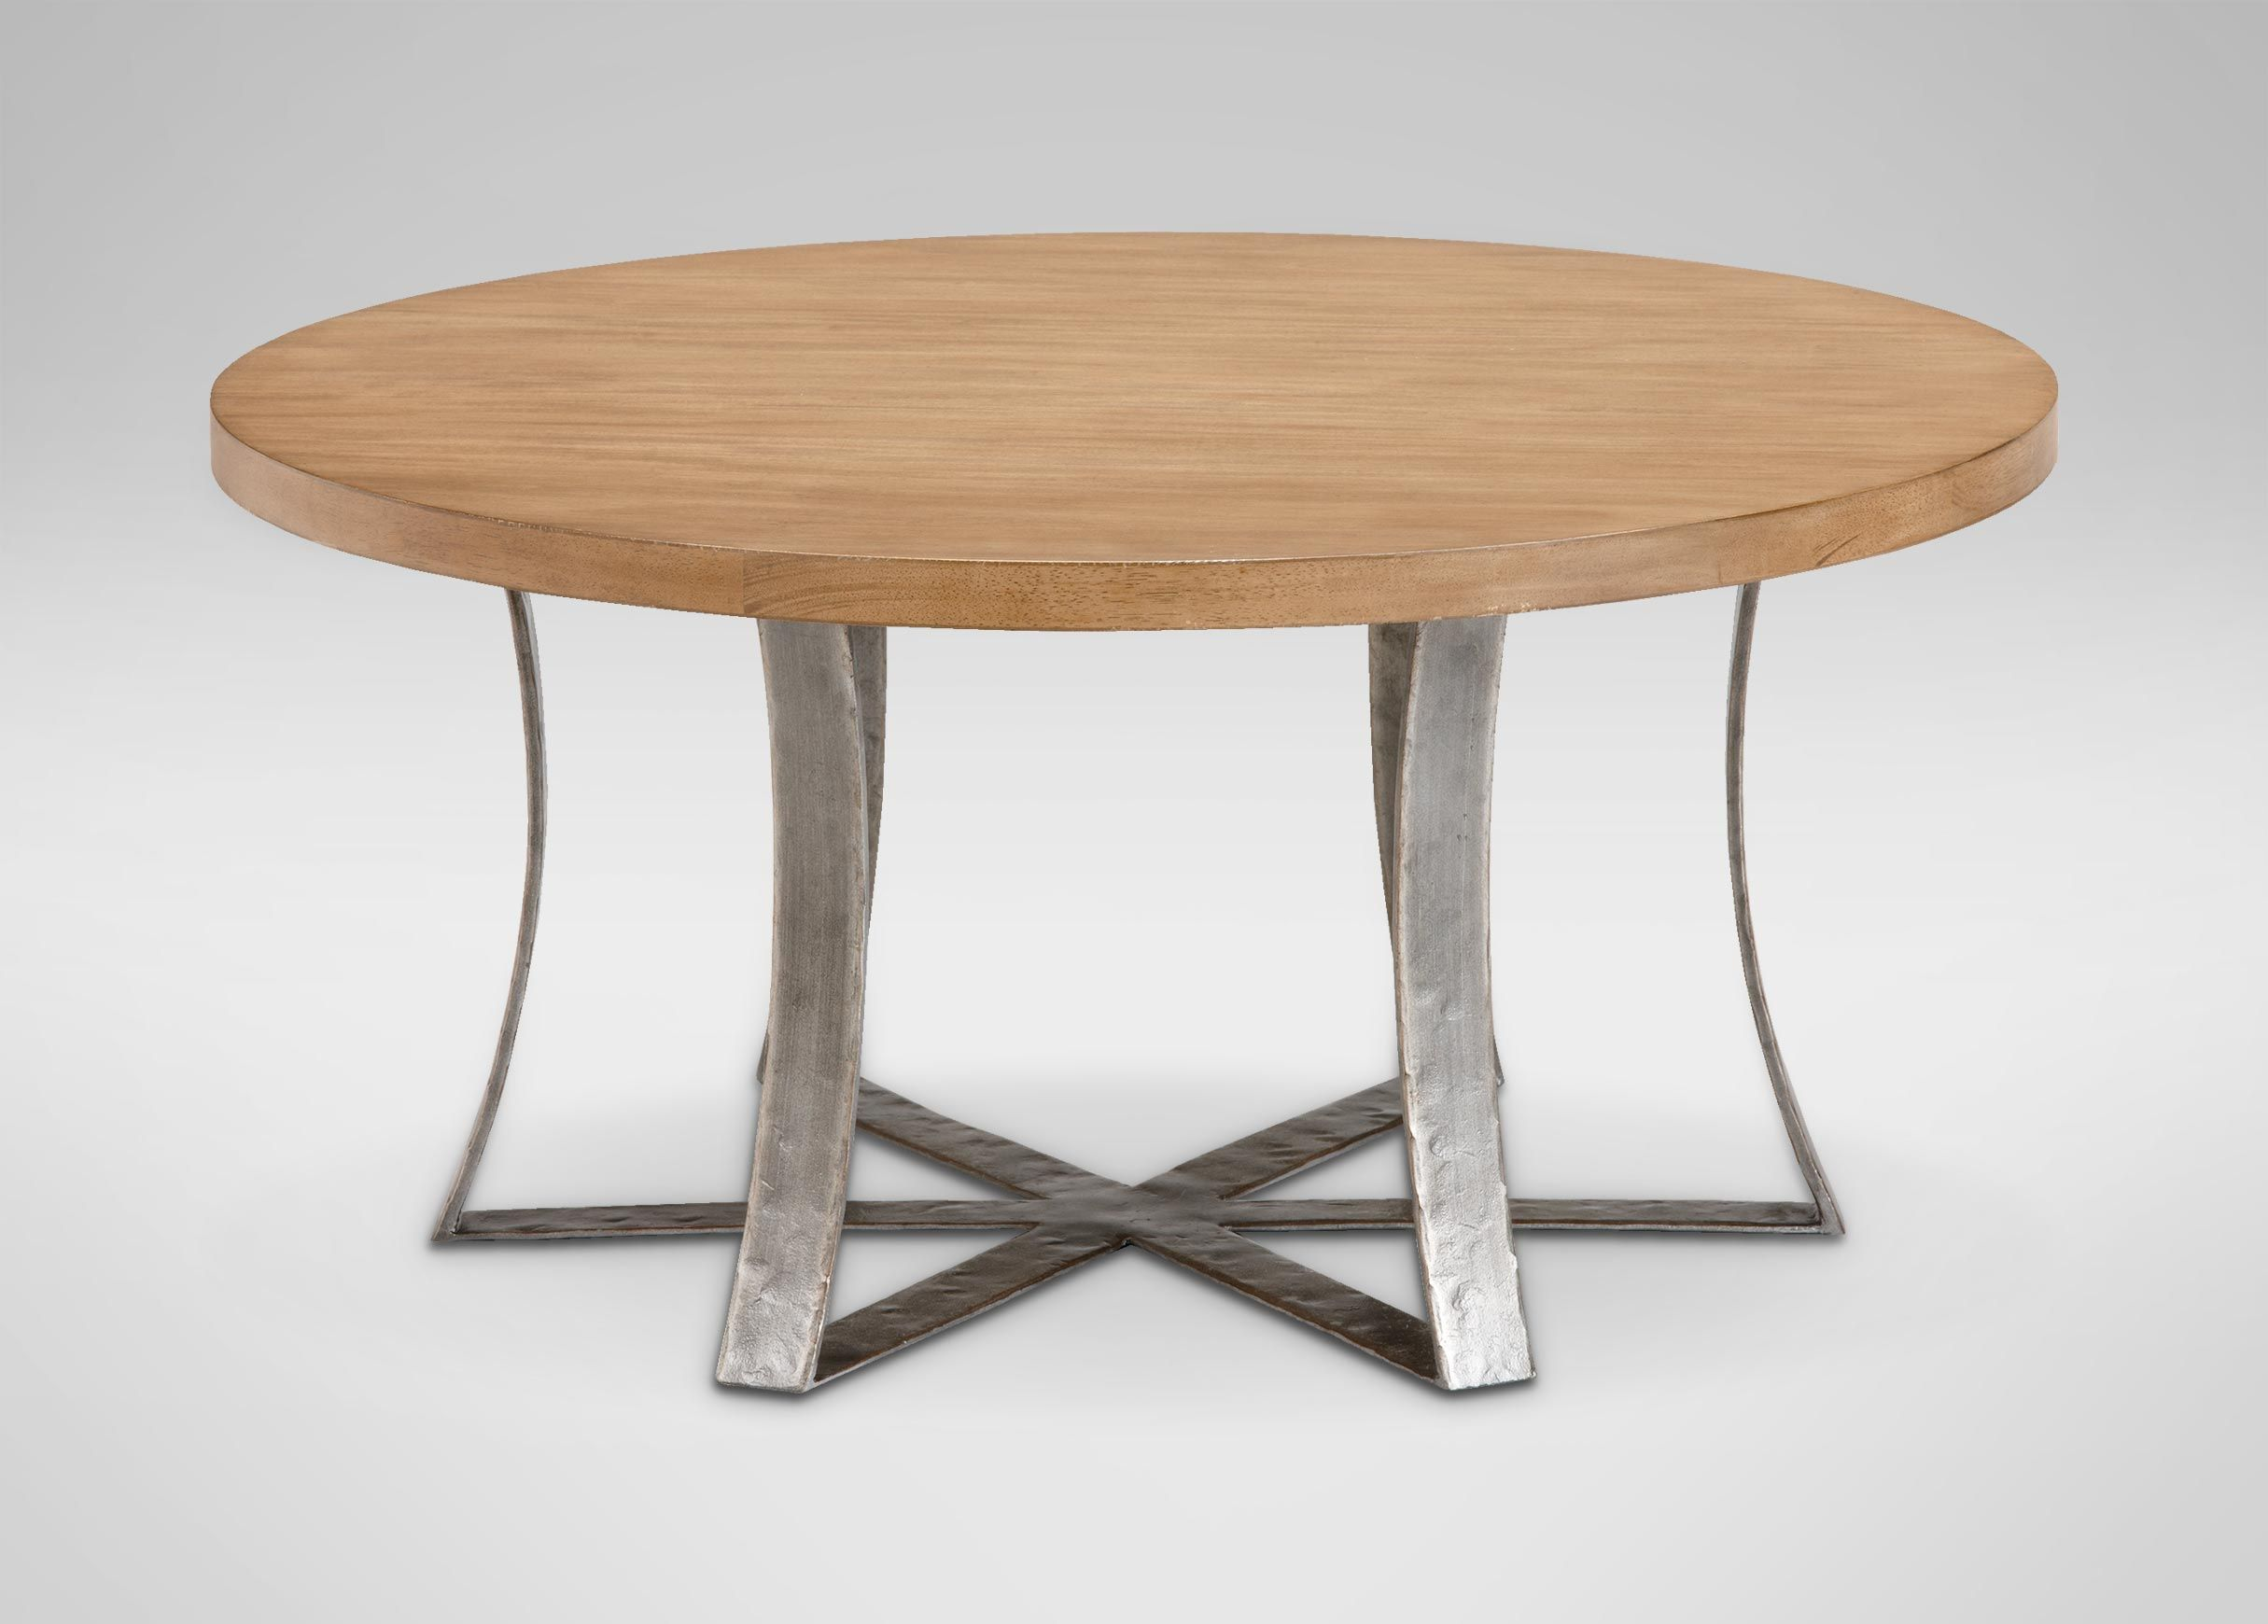 Roswell Round Coffee Table Ethan Allen Ca Round Coffee Table Rustic Side Table Oval Glass Coffee Table [ 1740 x 2430 Pixel ]